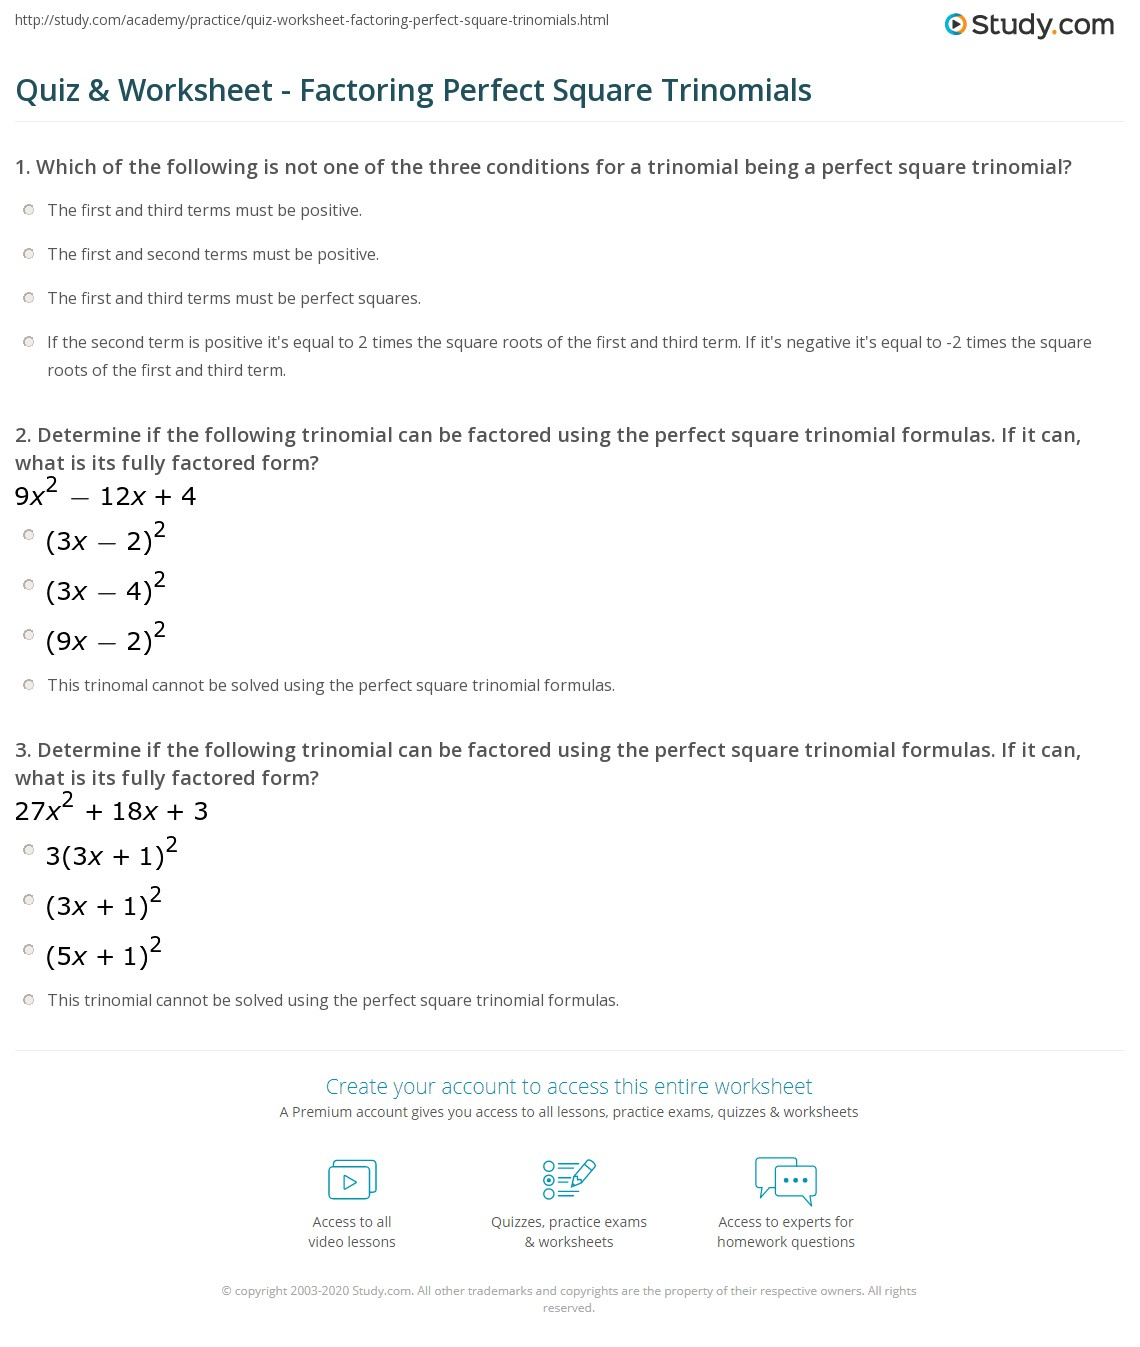 Printables Factoring Ax2 Bx C Worksheet factoring ax2 bx c worksheet answers abitlikethis quiz amp perfect square trinomials study com